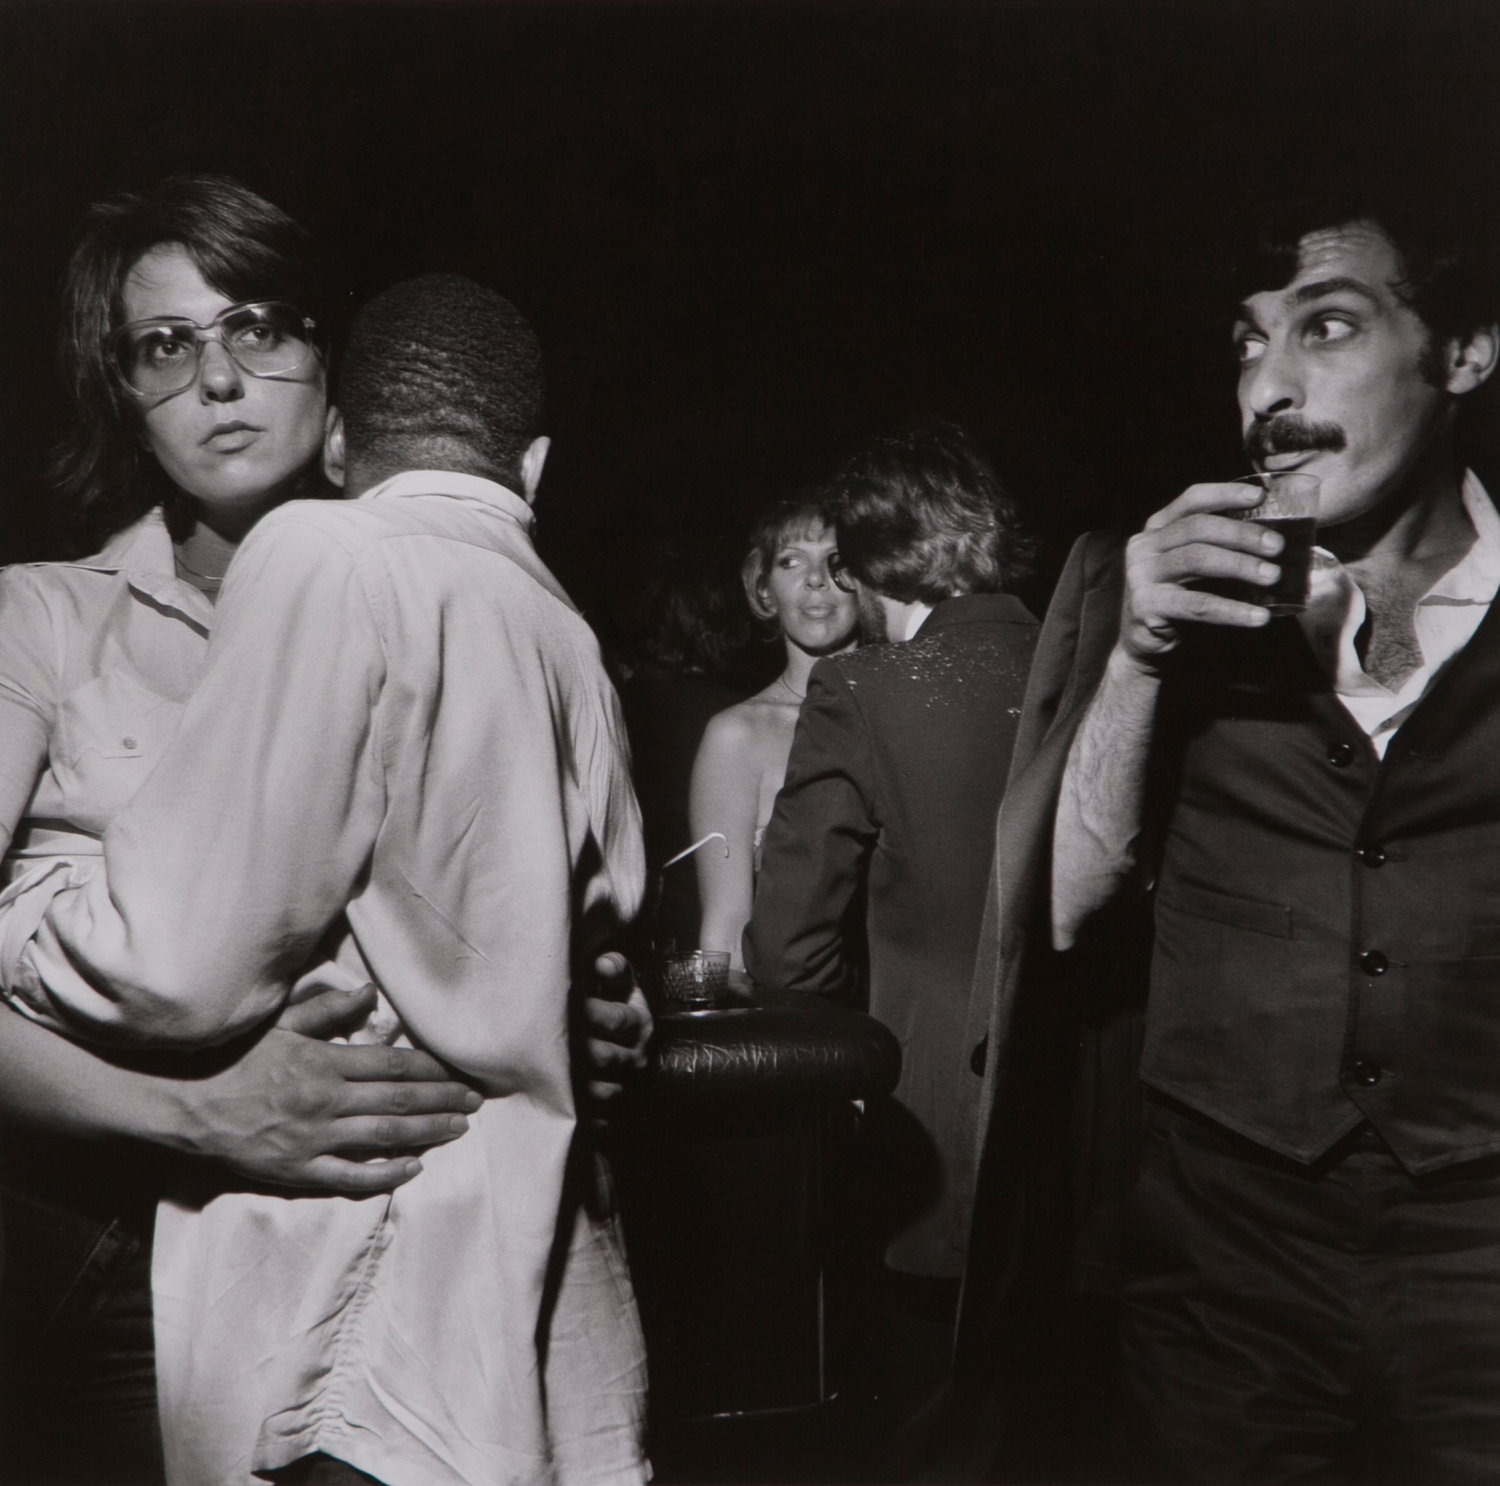 Larry Fink (American, born 1941), False Men and their Makers, Studio 54, N.Y.C. – May, 1977, from the portfolio Social Context, 1977, Gelatin silver print on Fortezo paper, 14 ¼ x 14 ½ in.; Hofstra University Museum of Art, gift of Susan and Steven Ball, HU92.68.14 © 2019 Larry Fink